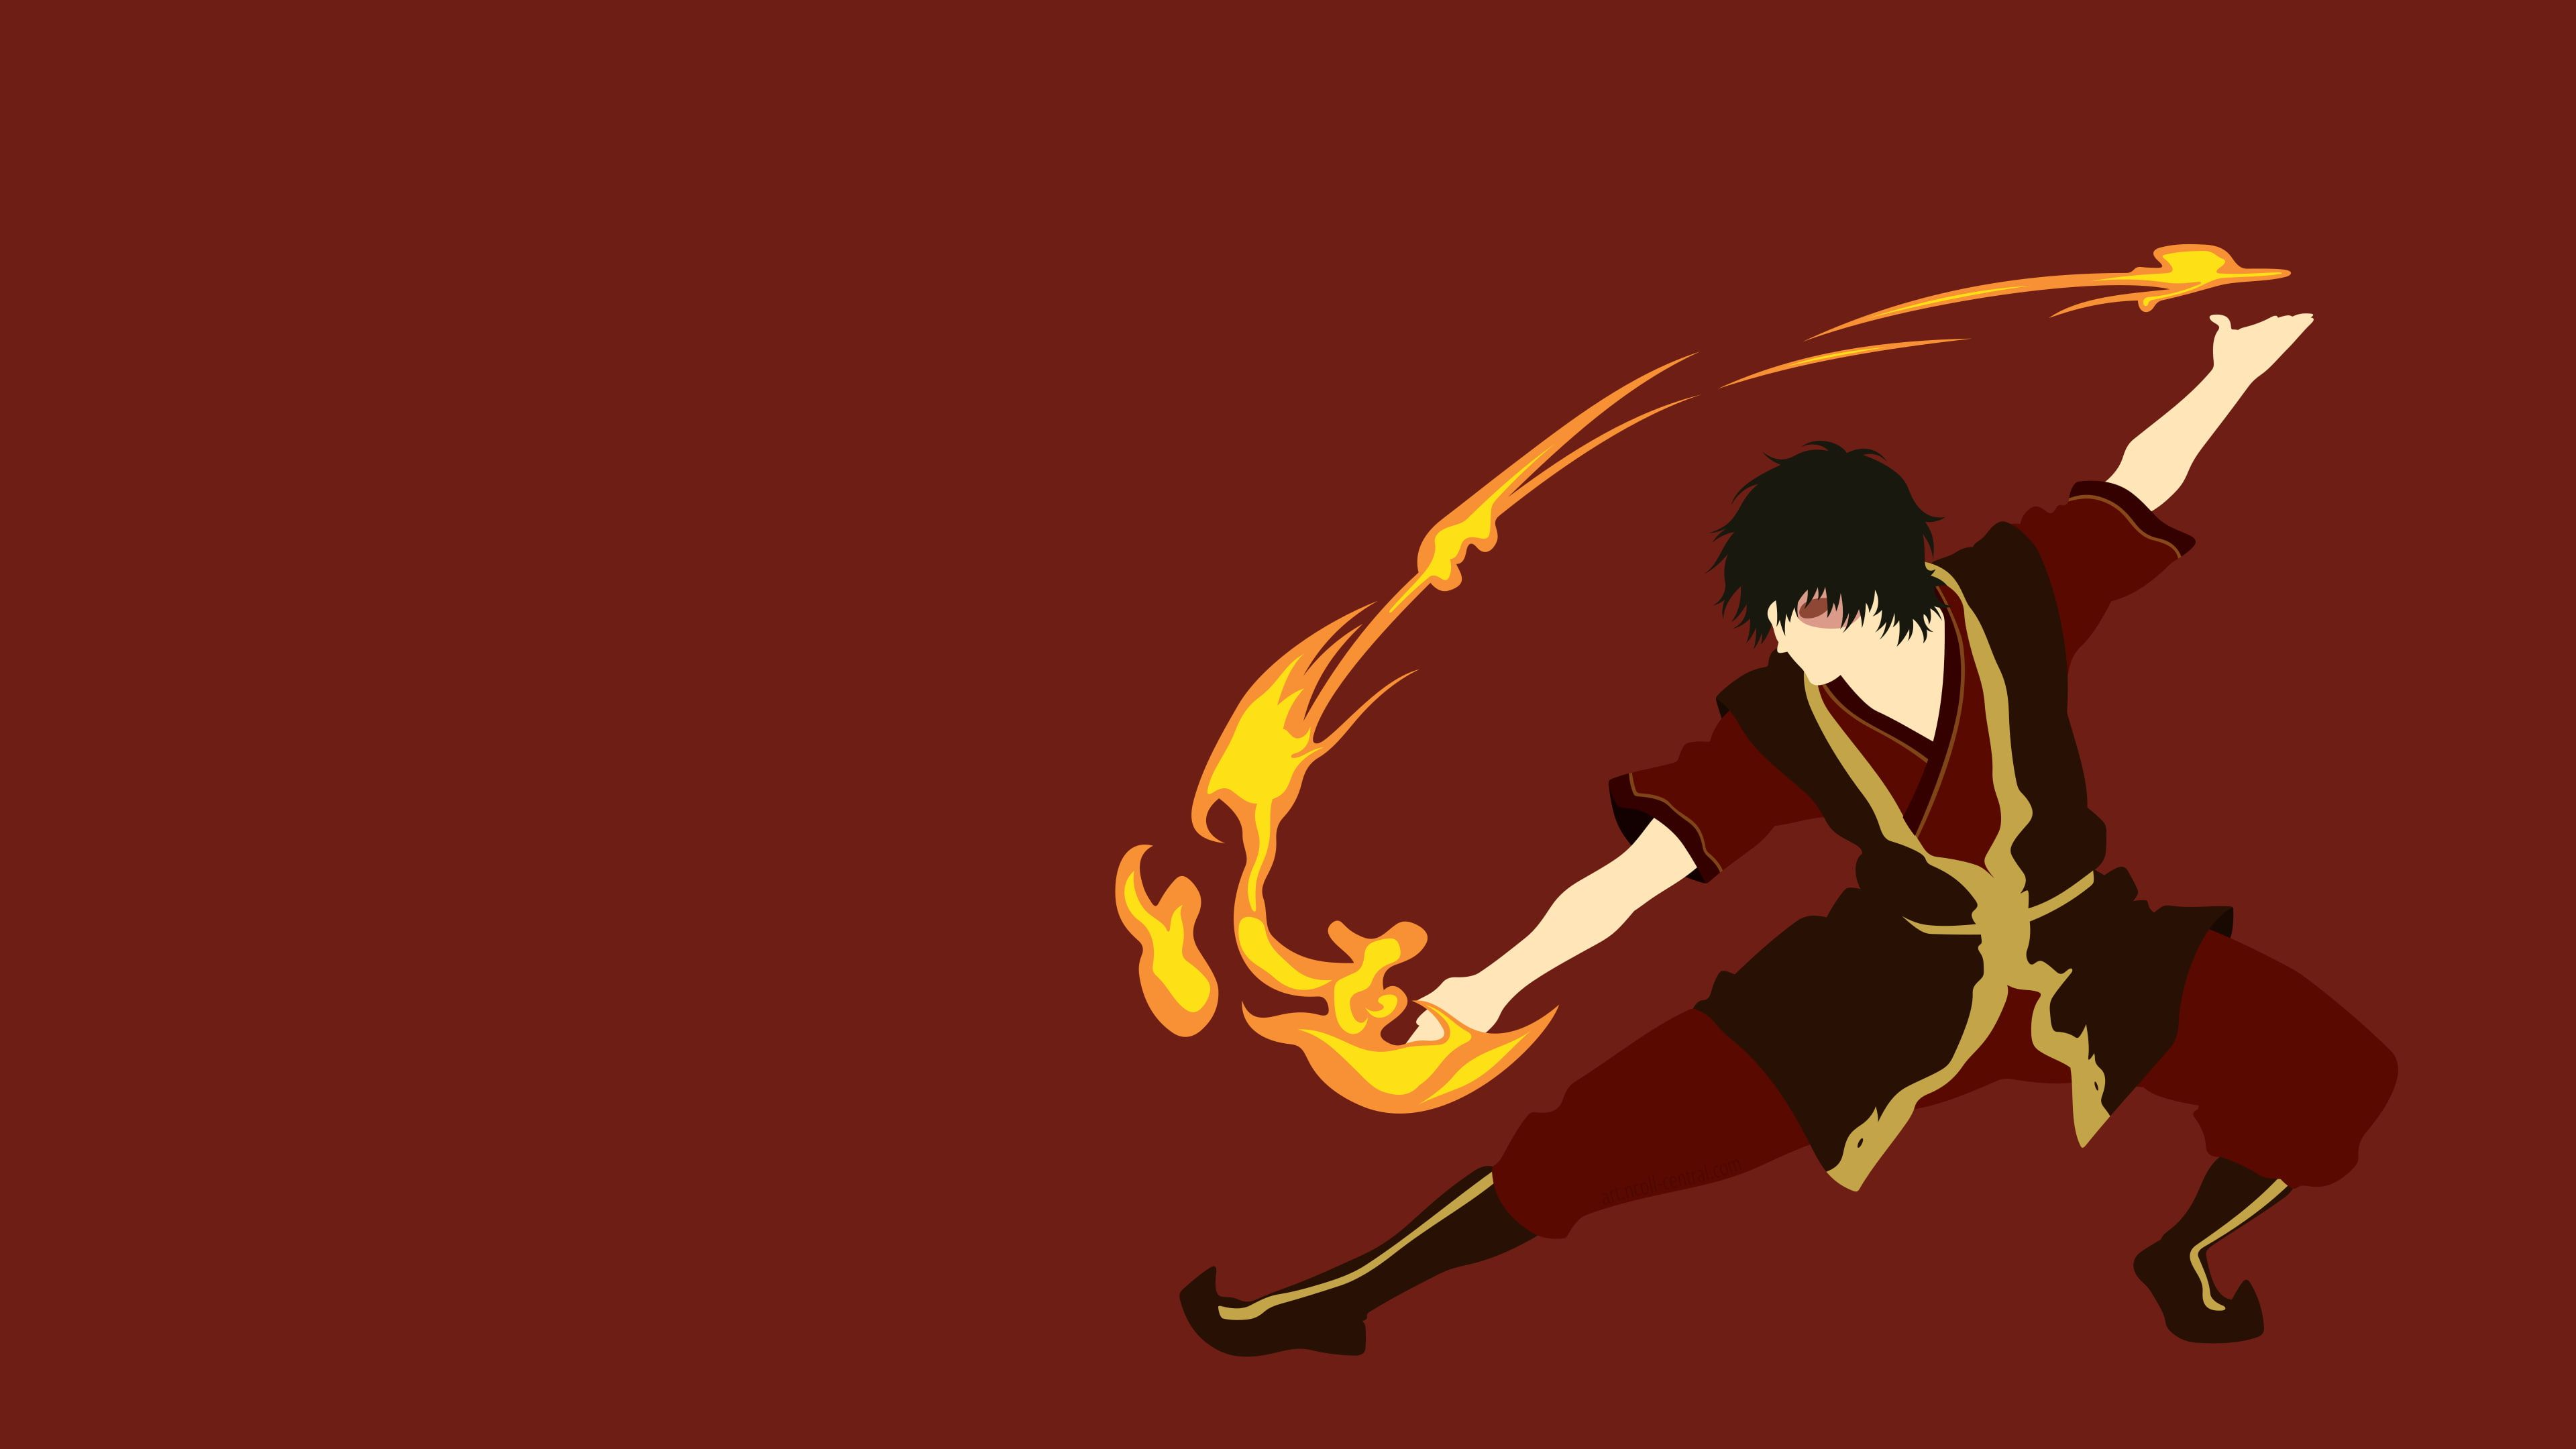 Avatar Anime Avatar The Last Airbender Zuko Avatar 4k Wallpaper Hdwallpaper Desktop In 2020 The Last Airbender Zuko Avatar Poster